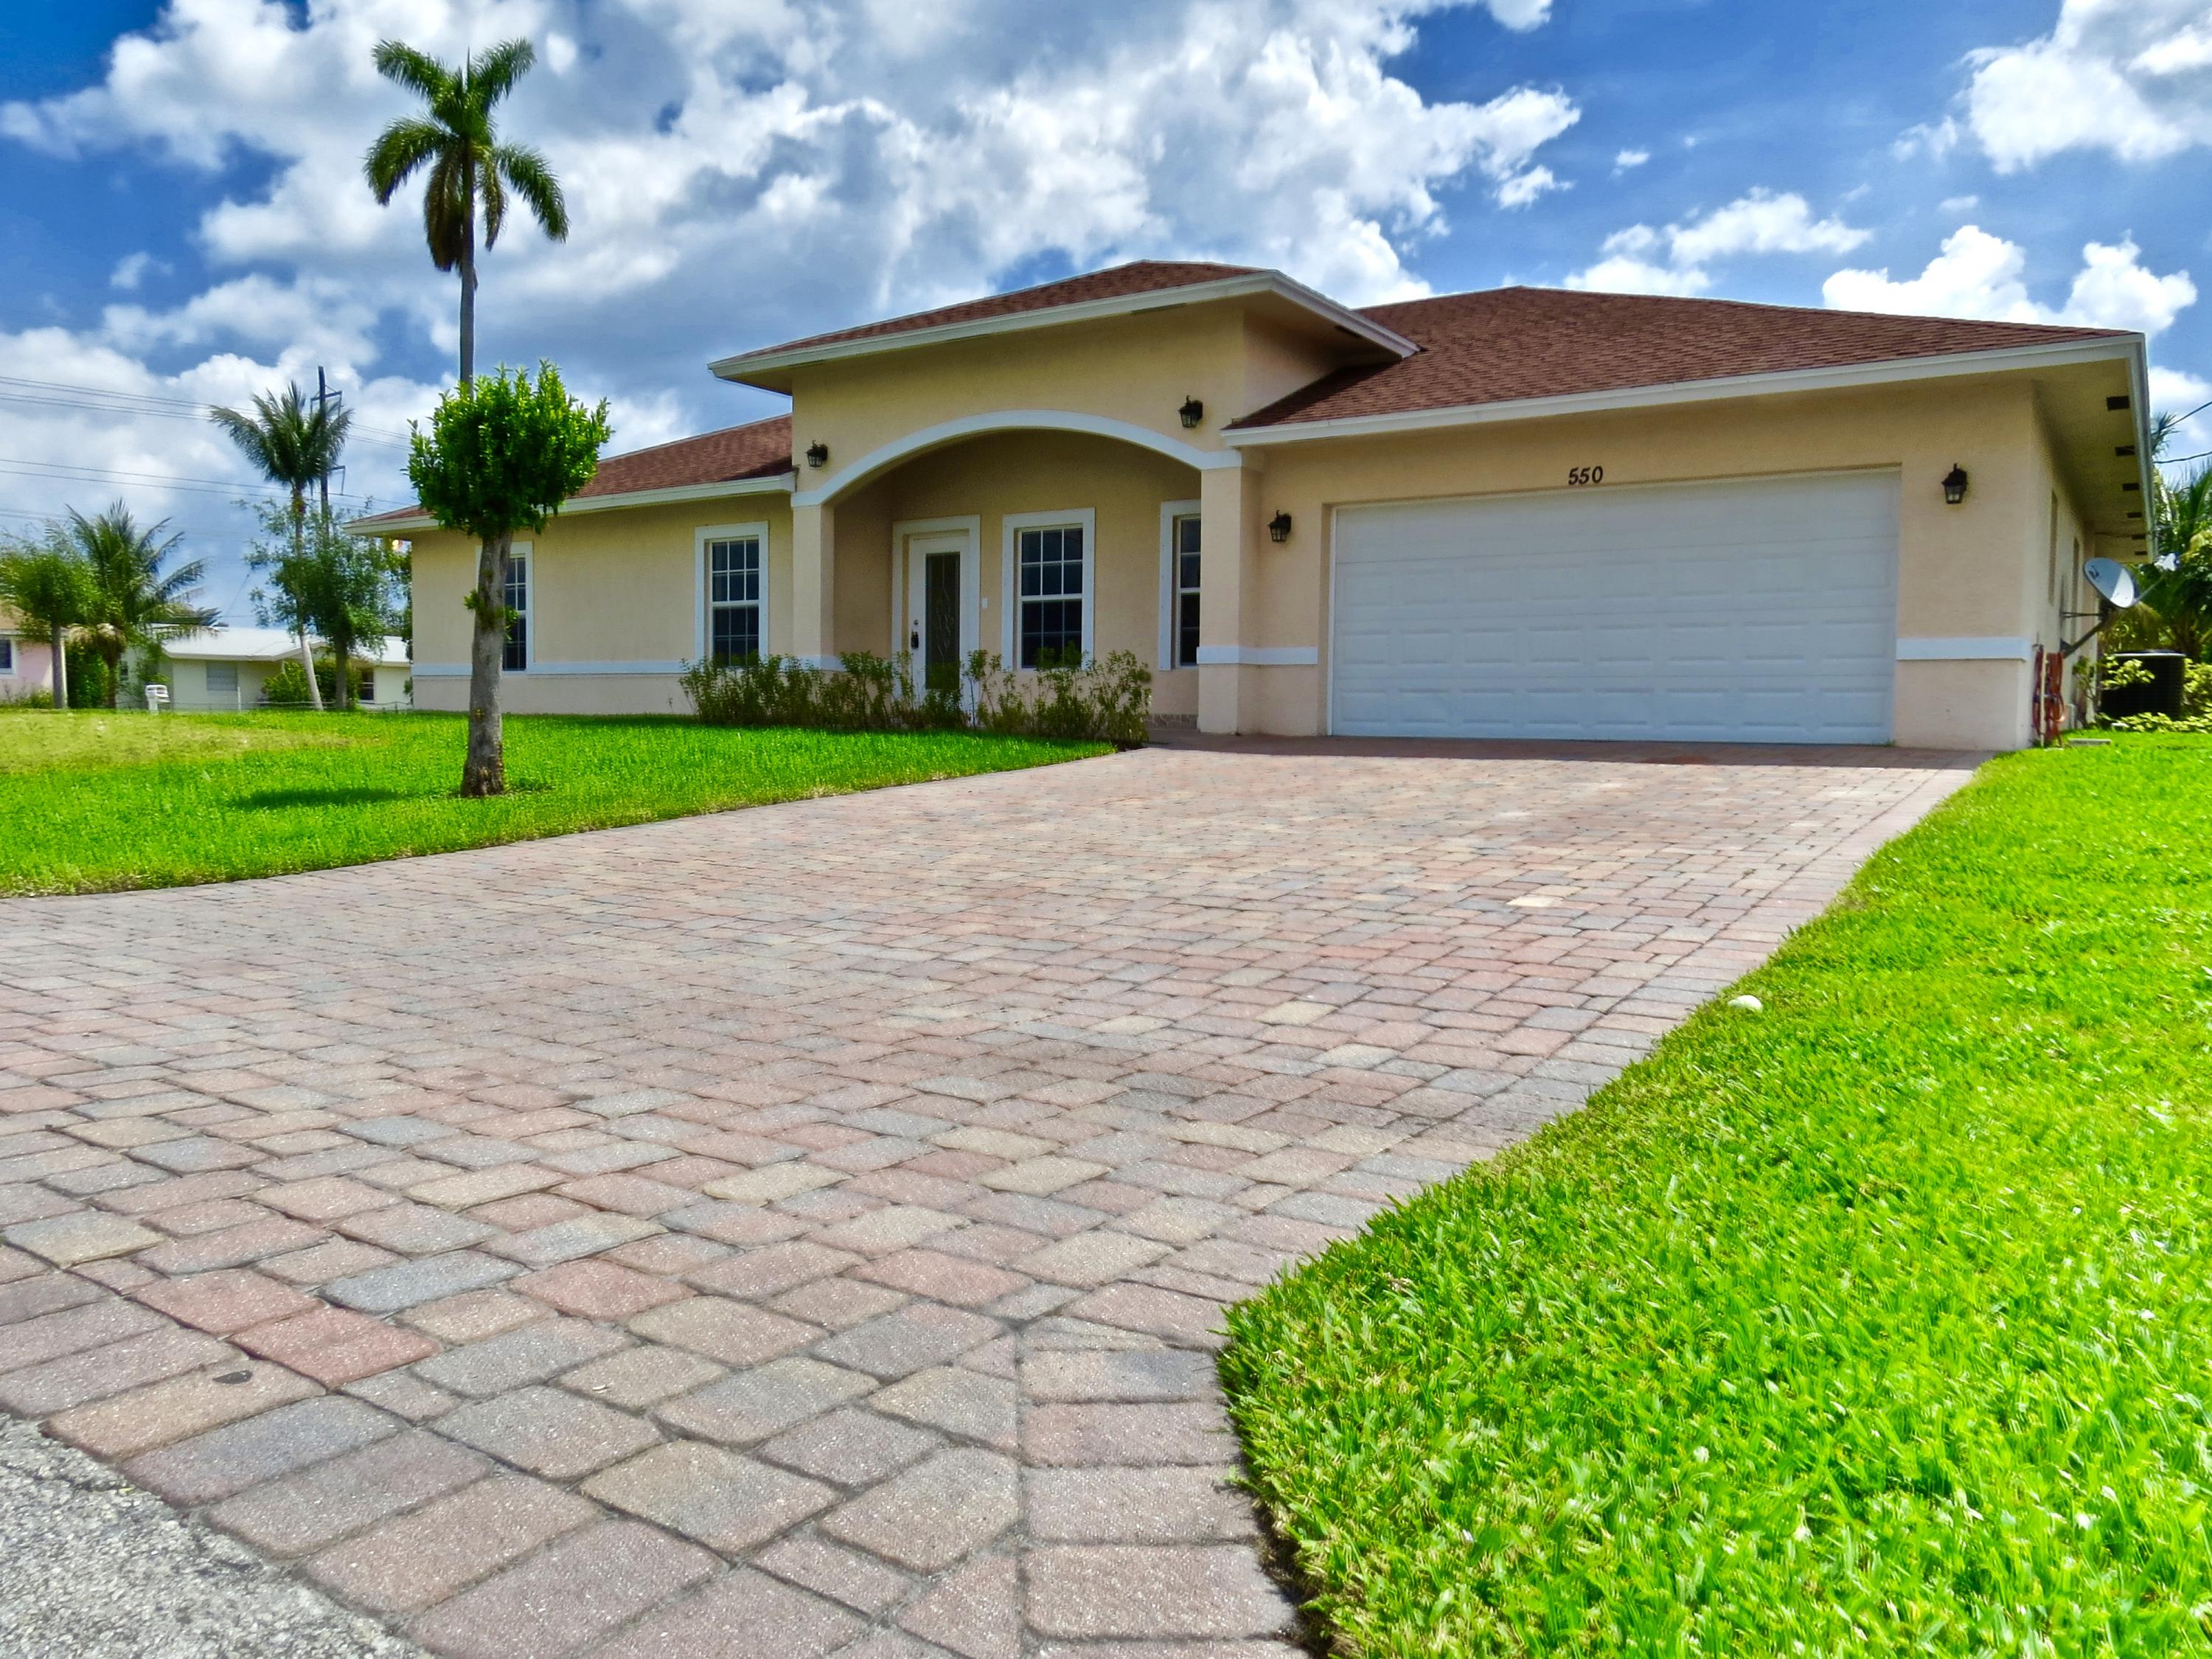 ... Bedroom 3 Bath 2 Car Garage Home In The Glen Ridge Section Of West Palm  Beach. Kitchen Boast Stainless Steel Appliances, Pantry And Granite  Countertops.